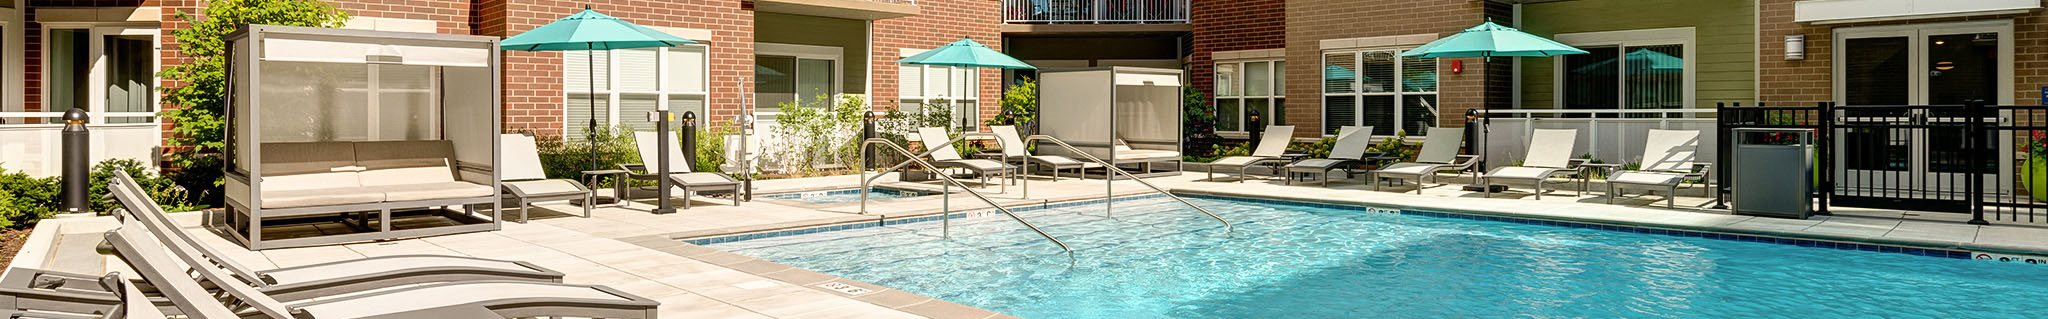 Outdoor swimming pool with lounge chair seating